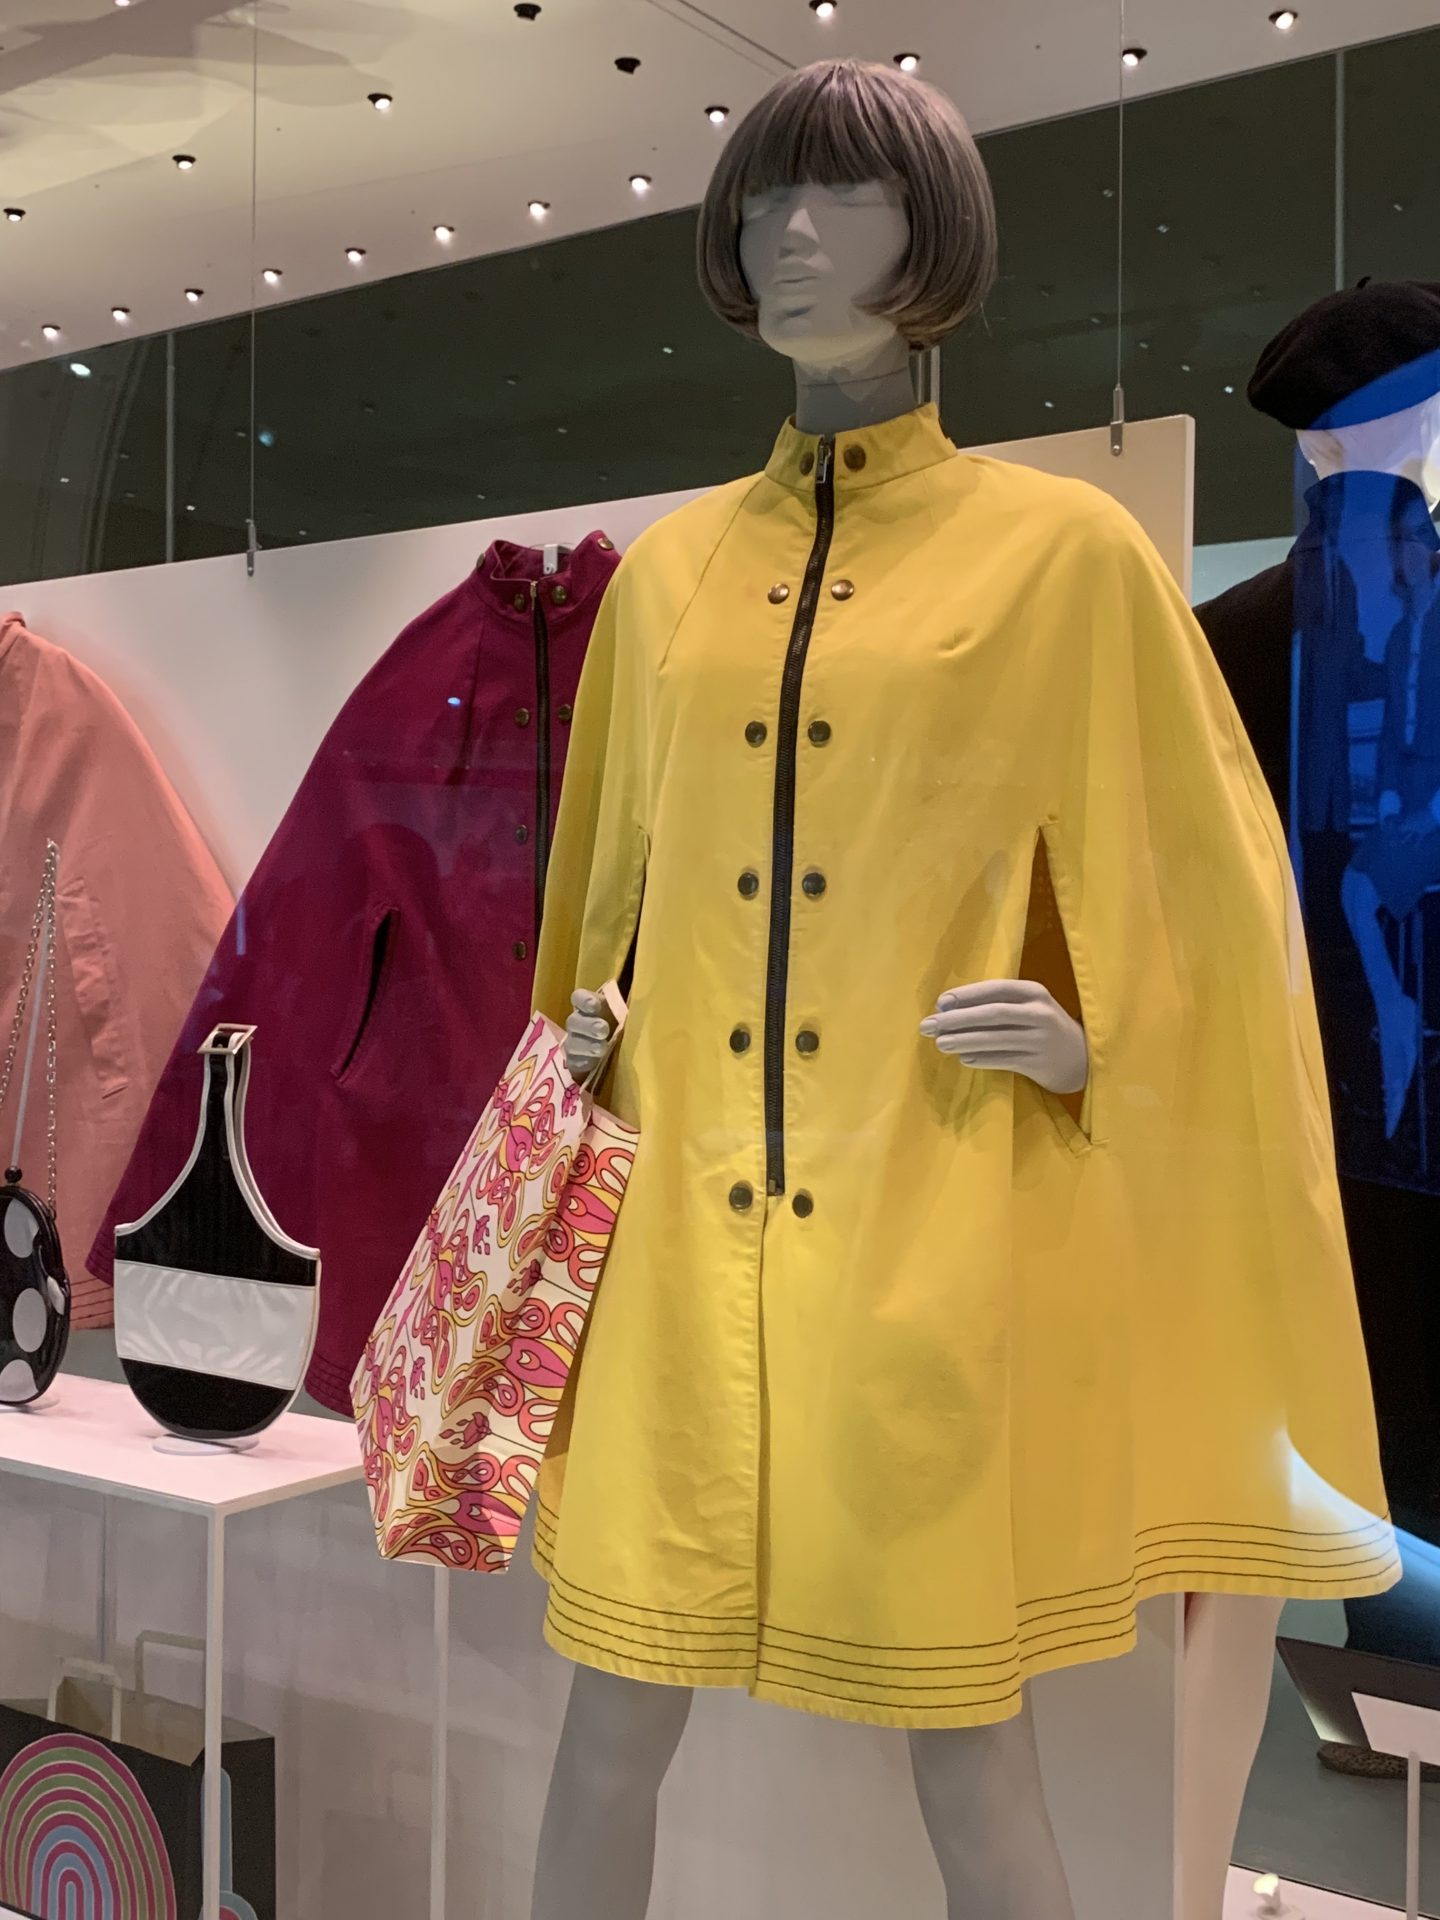 Mary Quant 1960s vintage fashion at the V&A Cape